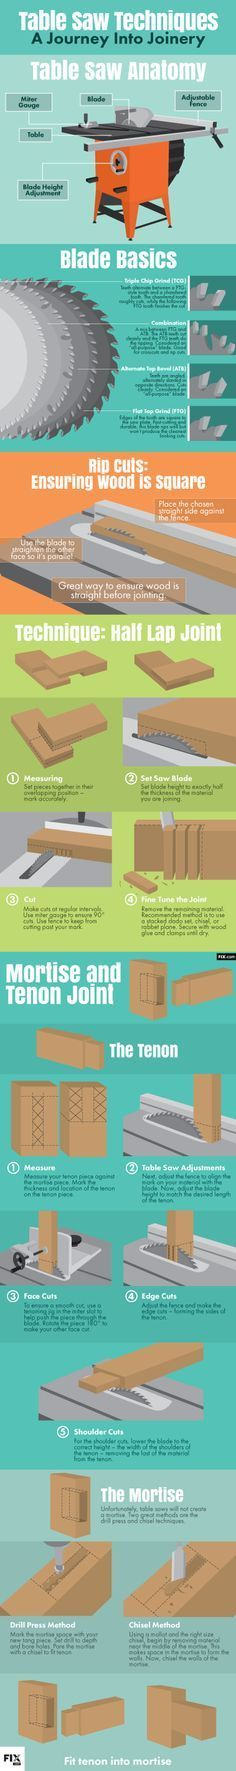 Woodworking Tips Joining wood can be simple on a table saw. Create seamless, beautiful joints for all your construction projects. - Joining wood can be simple on a table saw. Create seamless, beautiful joints for all your construction projects. Woodworking Table Plans, Best Woodworking Tools, Woodworking Techniques, Teds Woodworking, Woodworking Projects, Workbench Plans, Woodworking Furniture, Welding Projects, Garage Workbench